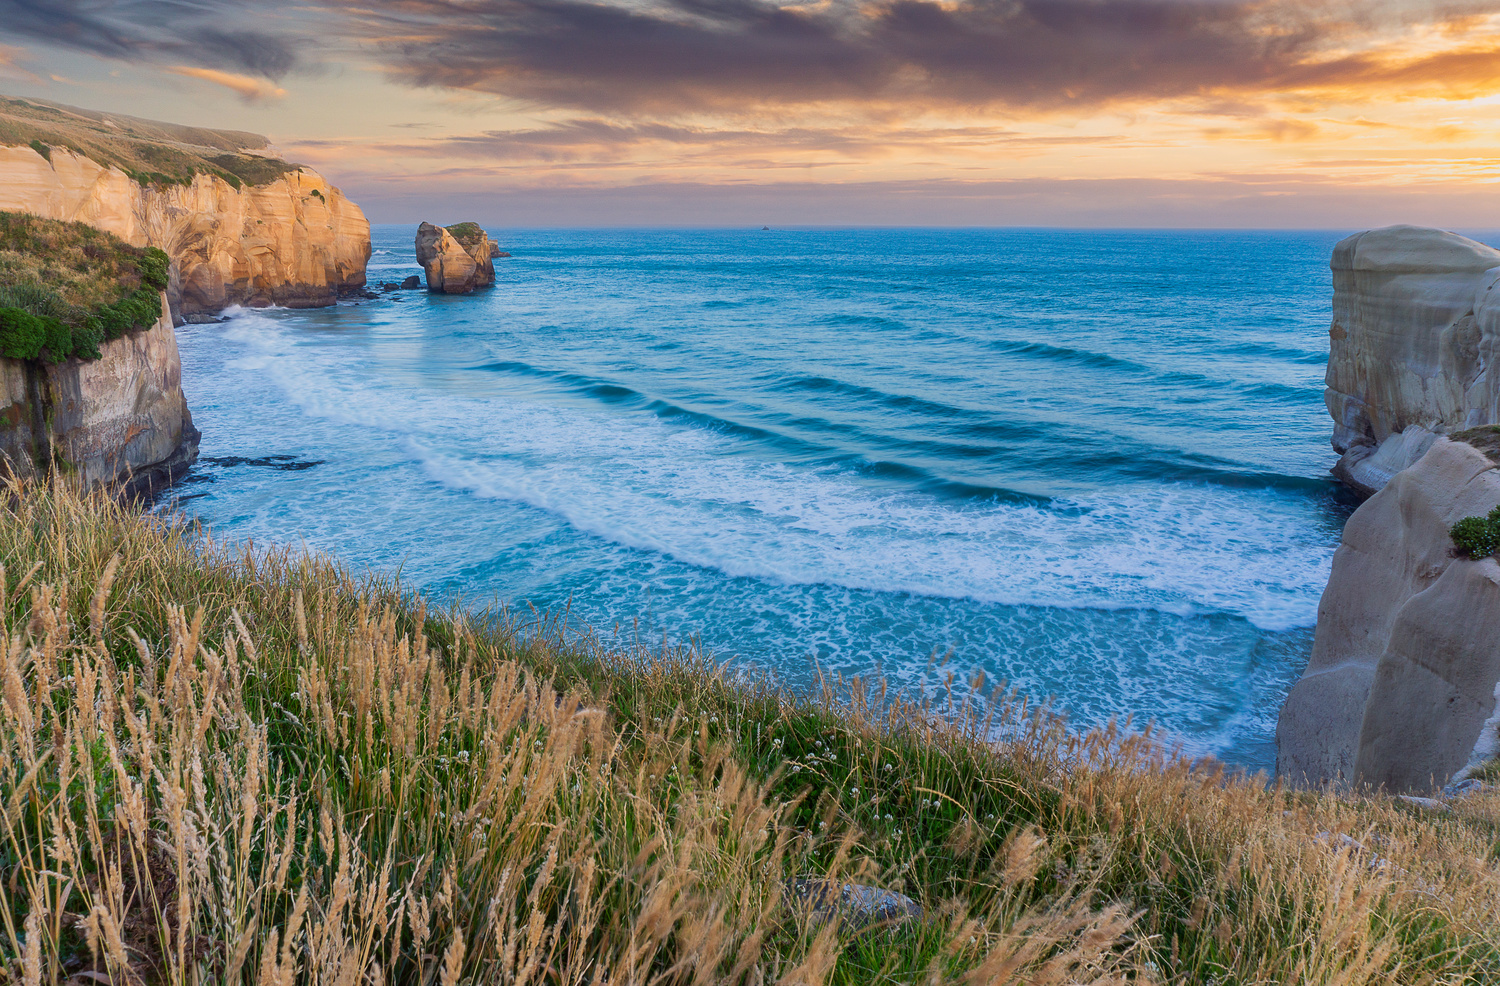 Sunset at Tunnel Beach by Jesse Vance